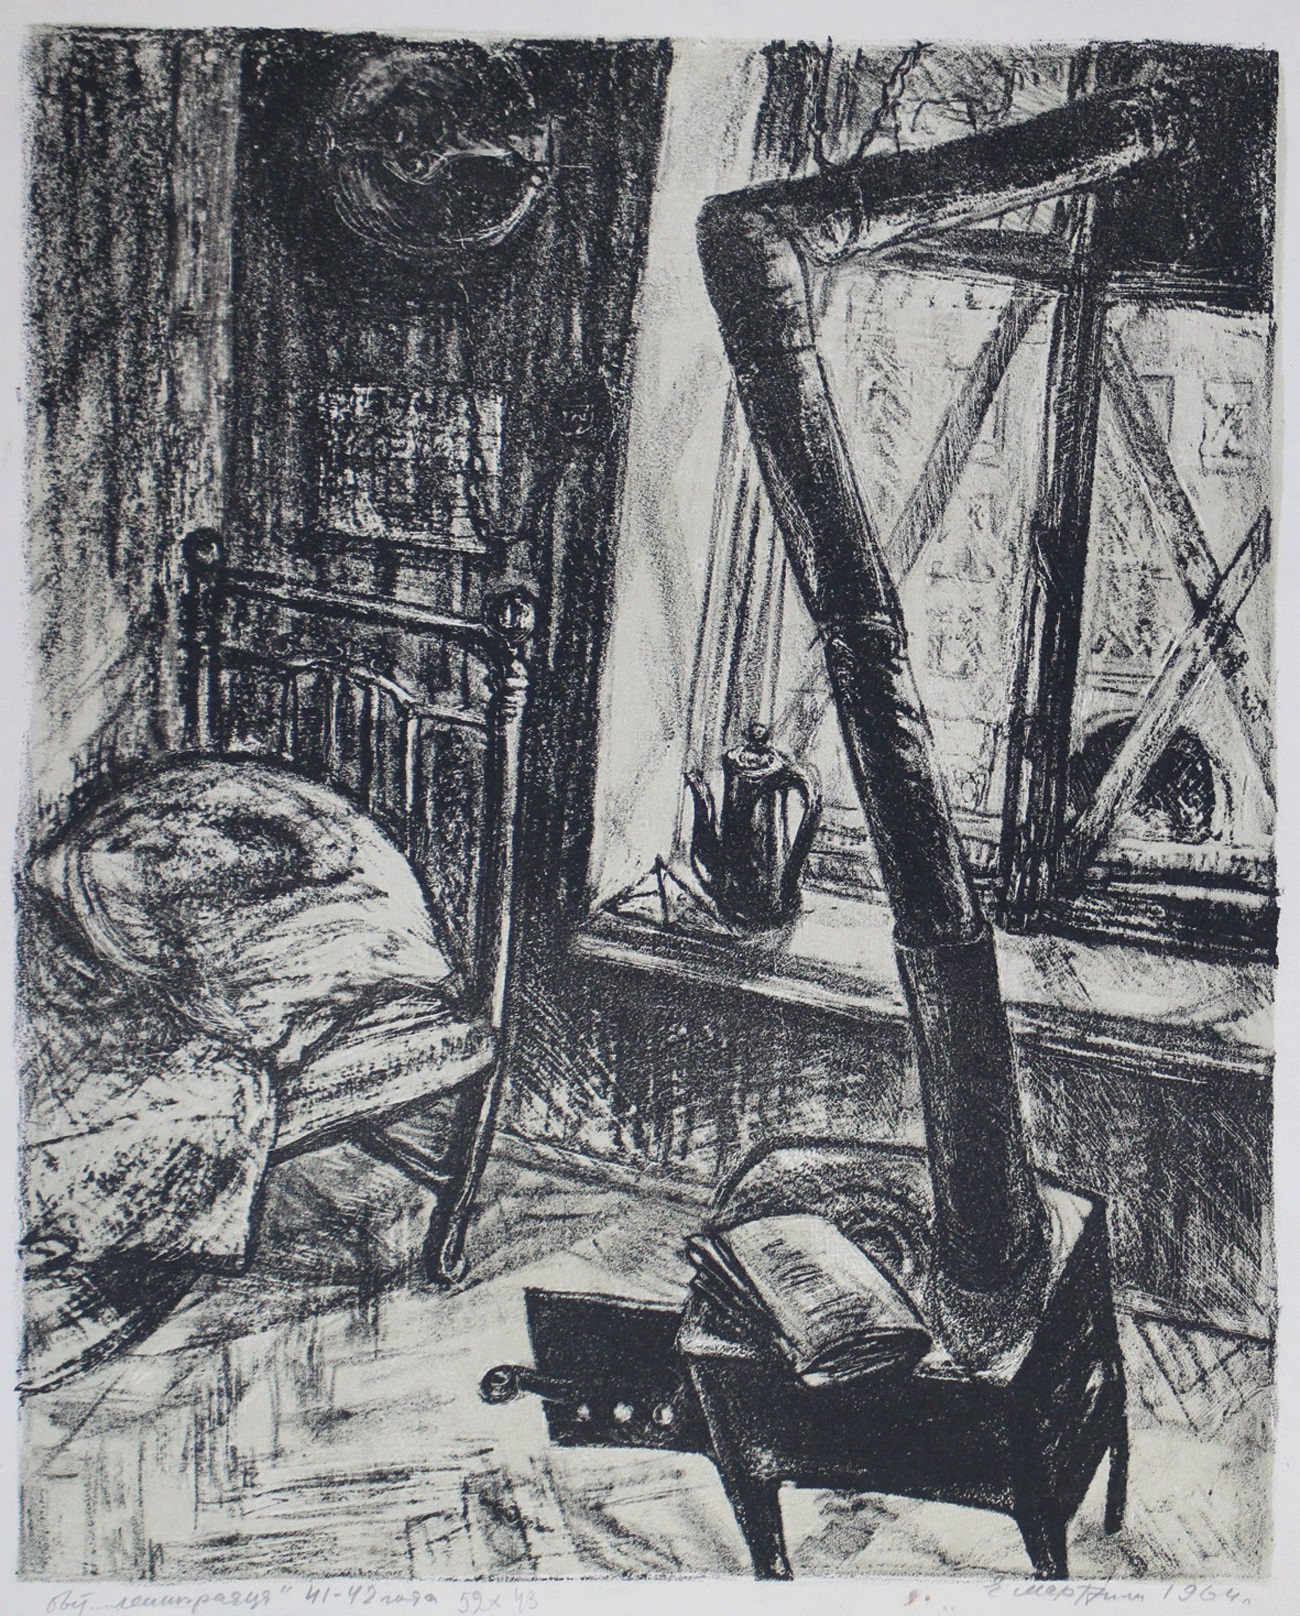 Surrounded by Nazi armies the city was being starved to death, had no power, and no contact with the outside world. Born in 1923, Elena Marttila was 18 when the Siege began and her art captured the full extent of death and suffering in Leningrad. // Picture: